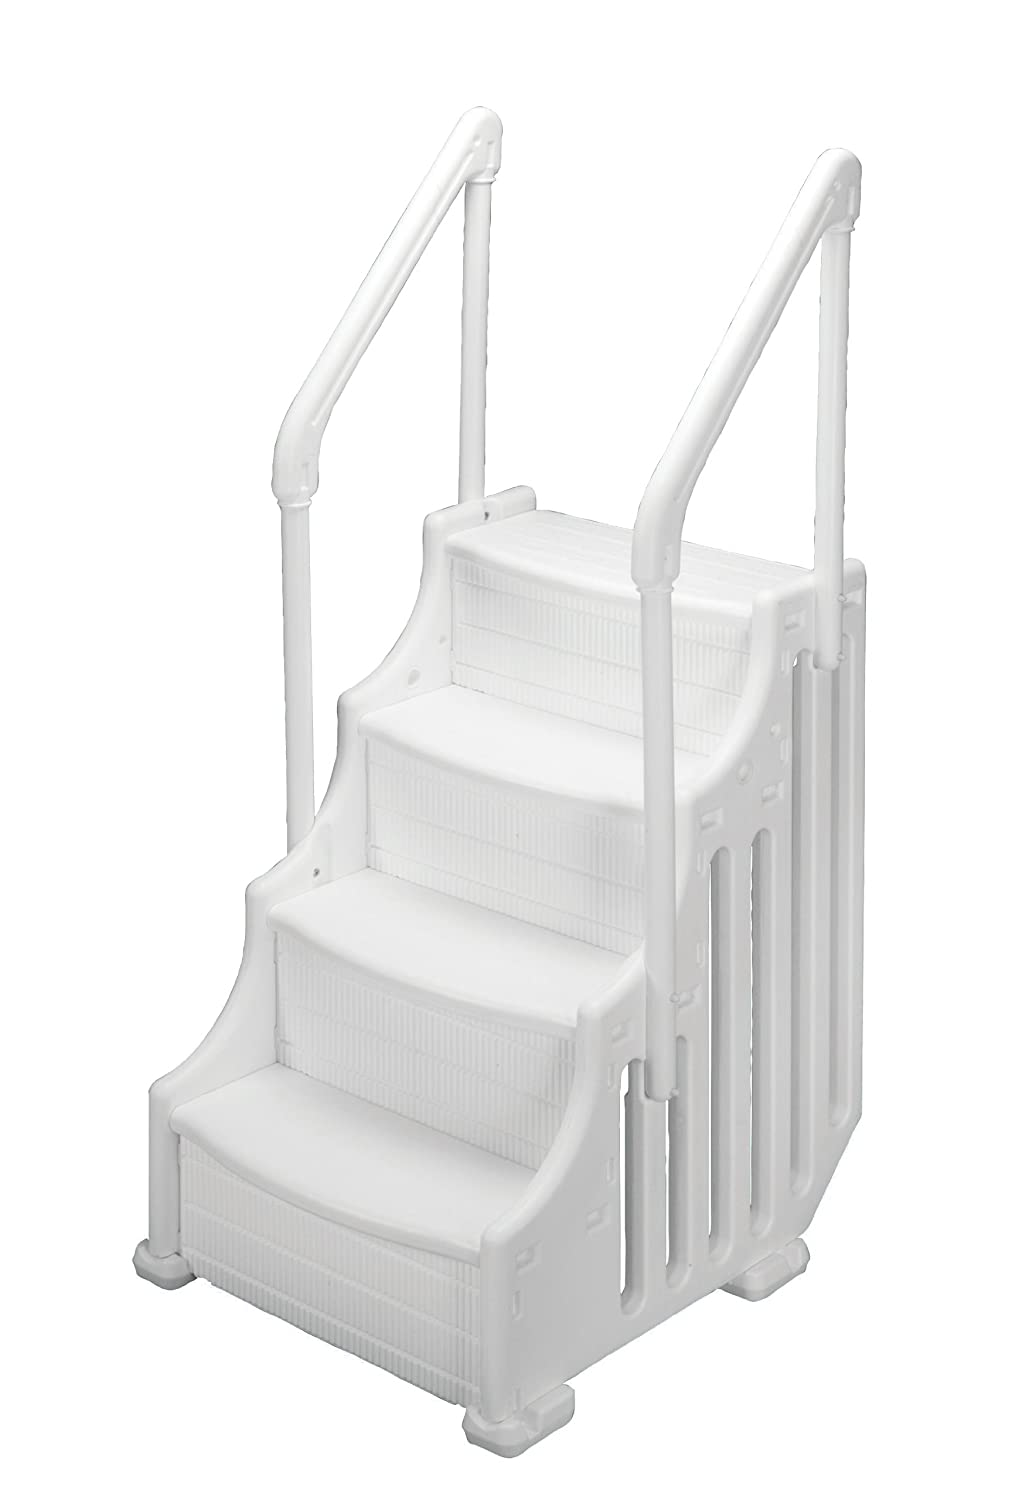 Top 5 Best Swimming Pool Steps And Ladder Reviews in 2020 2